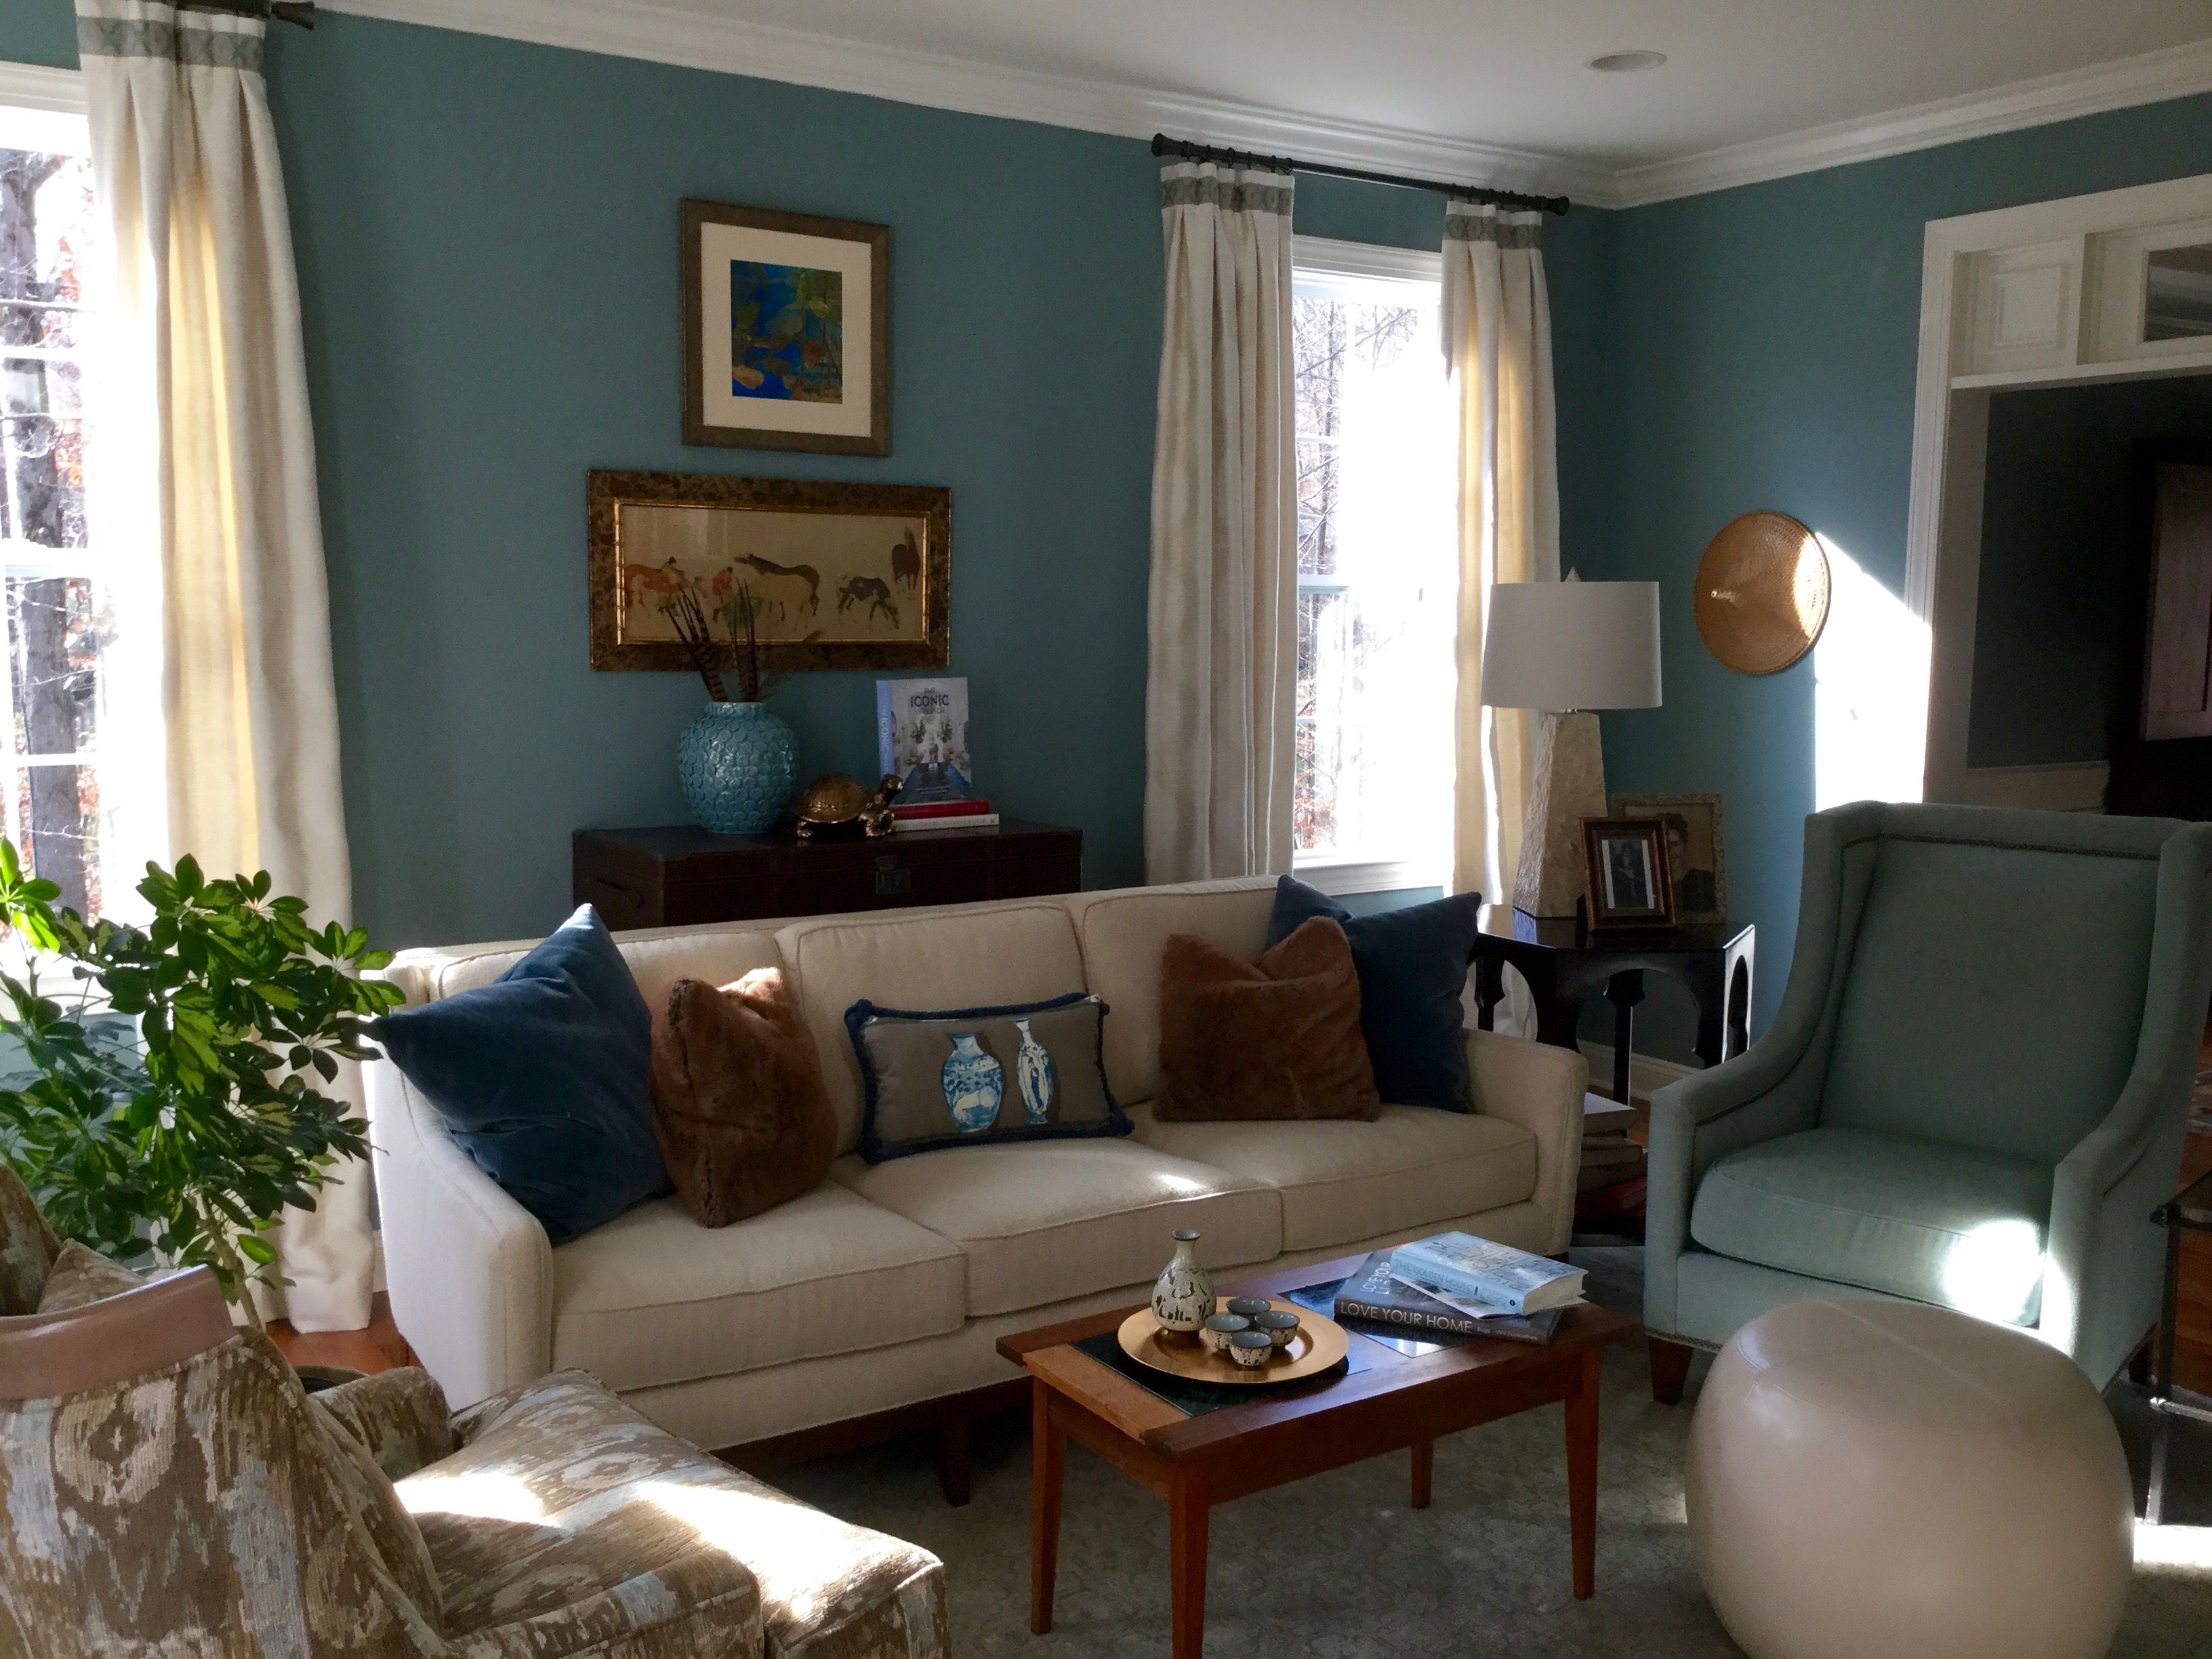 Chester County Pa Living Room Benjamin Moore Atmospheric Walls Stationary Drapery Panels With Border Trim On Pleats Interior Design Room Design Interior